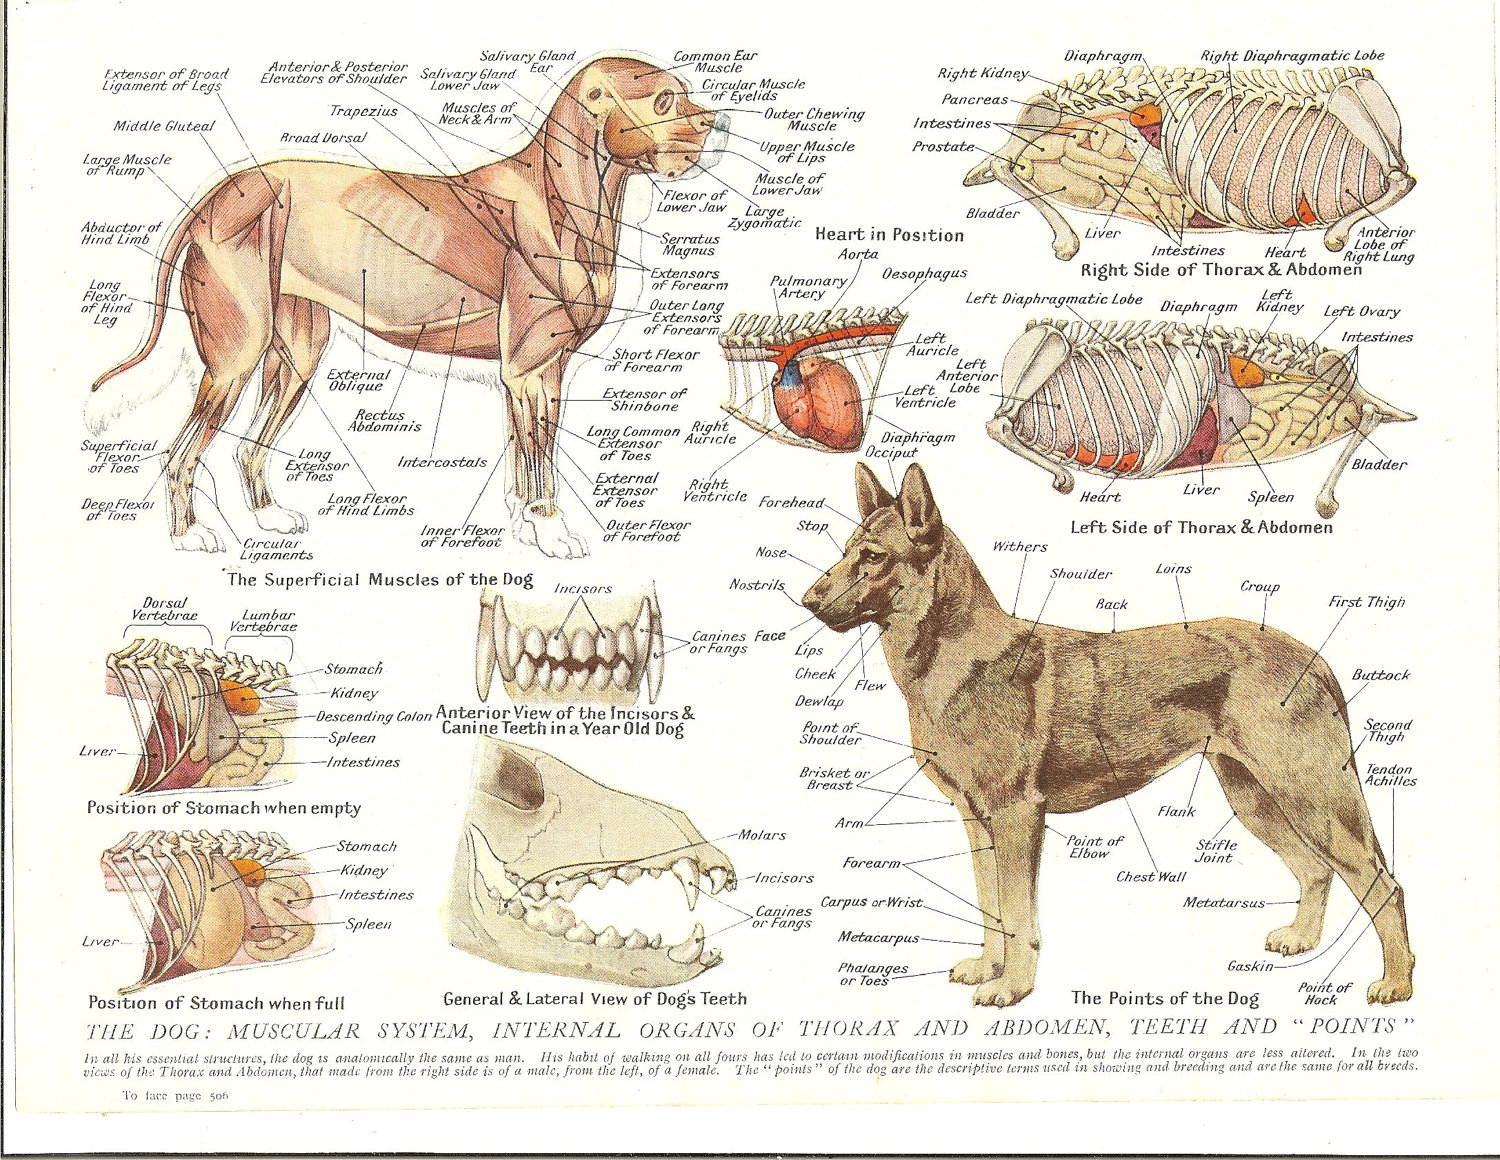 Dog Anatomy In Detail Include Muscle Skeleton Internal Organ And The External View